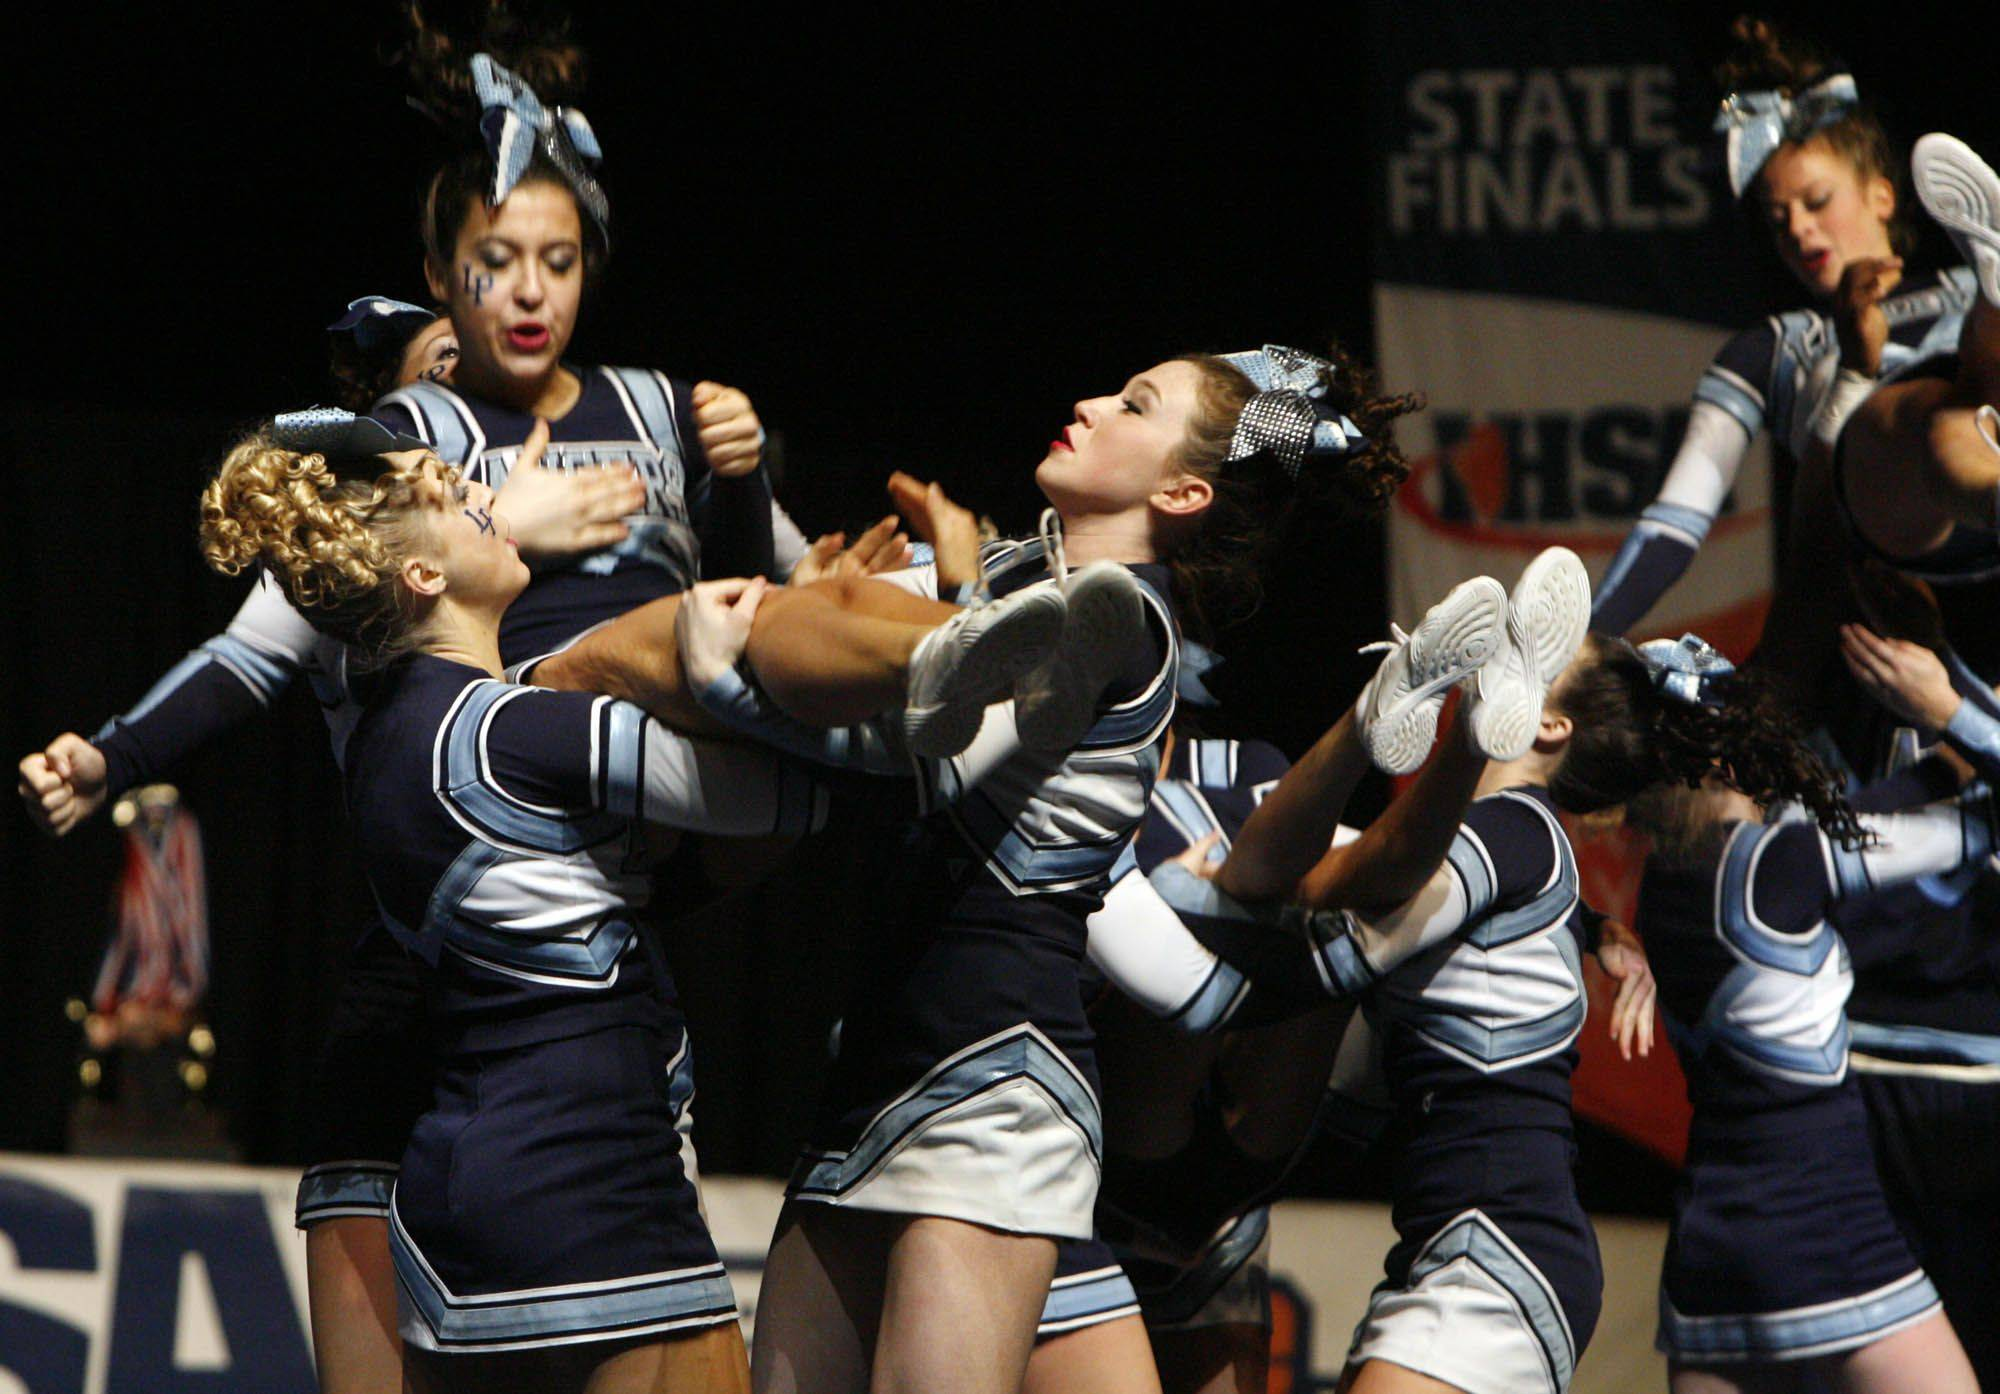 Lake Park performs at IHSA cheerleading state finals at U.S. Cellular Coliseum in Bloomington on Saturday, February 4th.